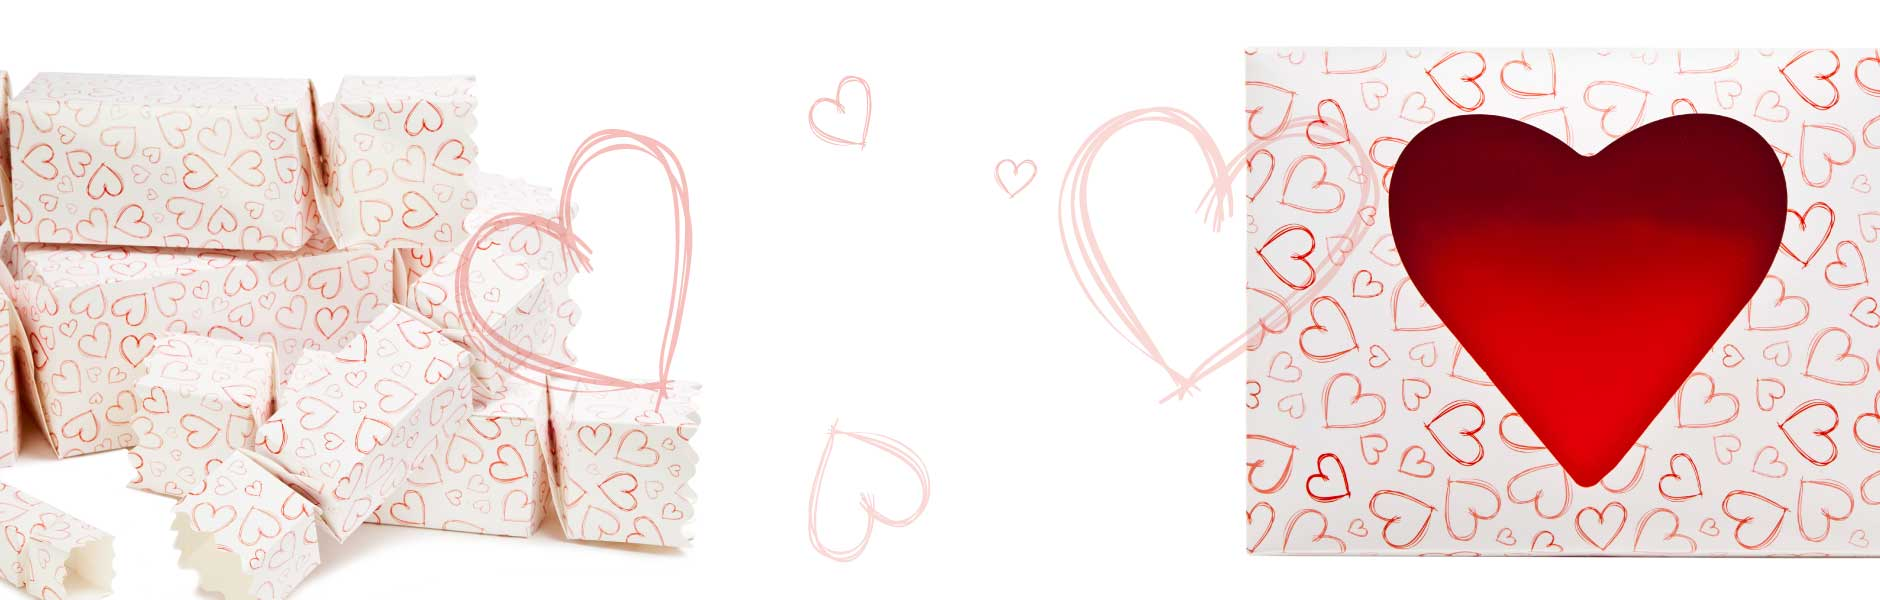 Introducing a brand new Light Hearts design across a range of our gift packaging